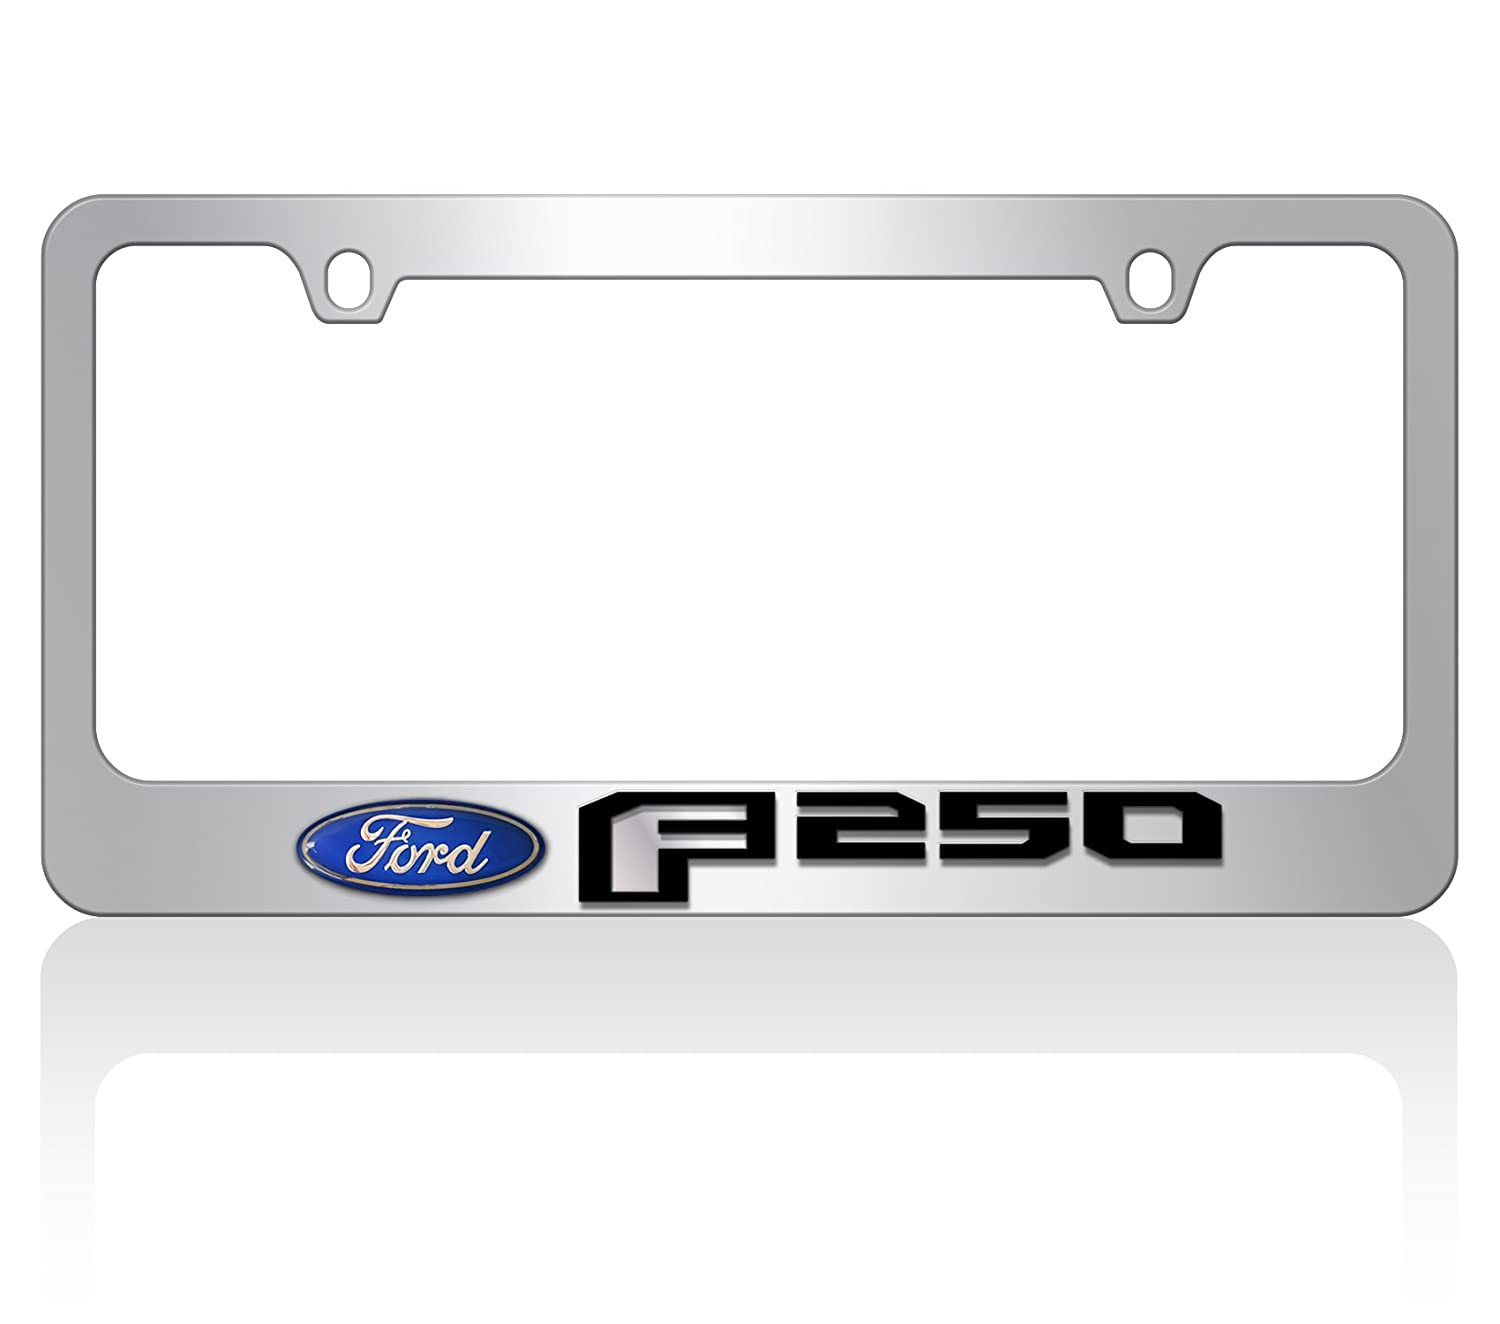 Domed Ford Oval Mirror F -Chrome License Plate Frame 2015 Ford F-250 Black Word Eurosport Daytona- Compatible with -